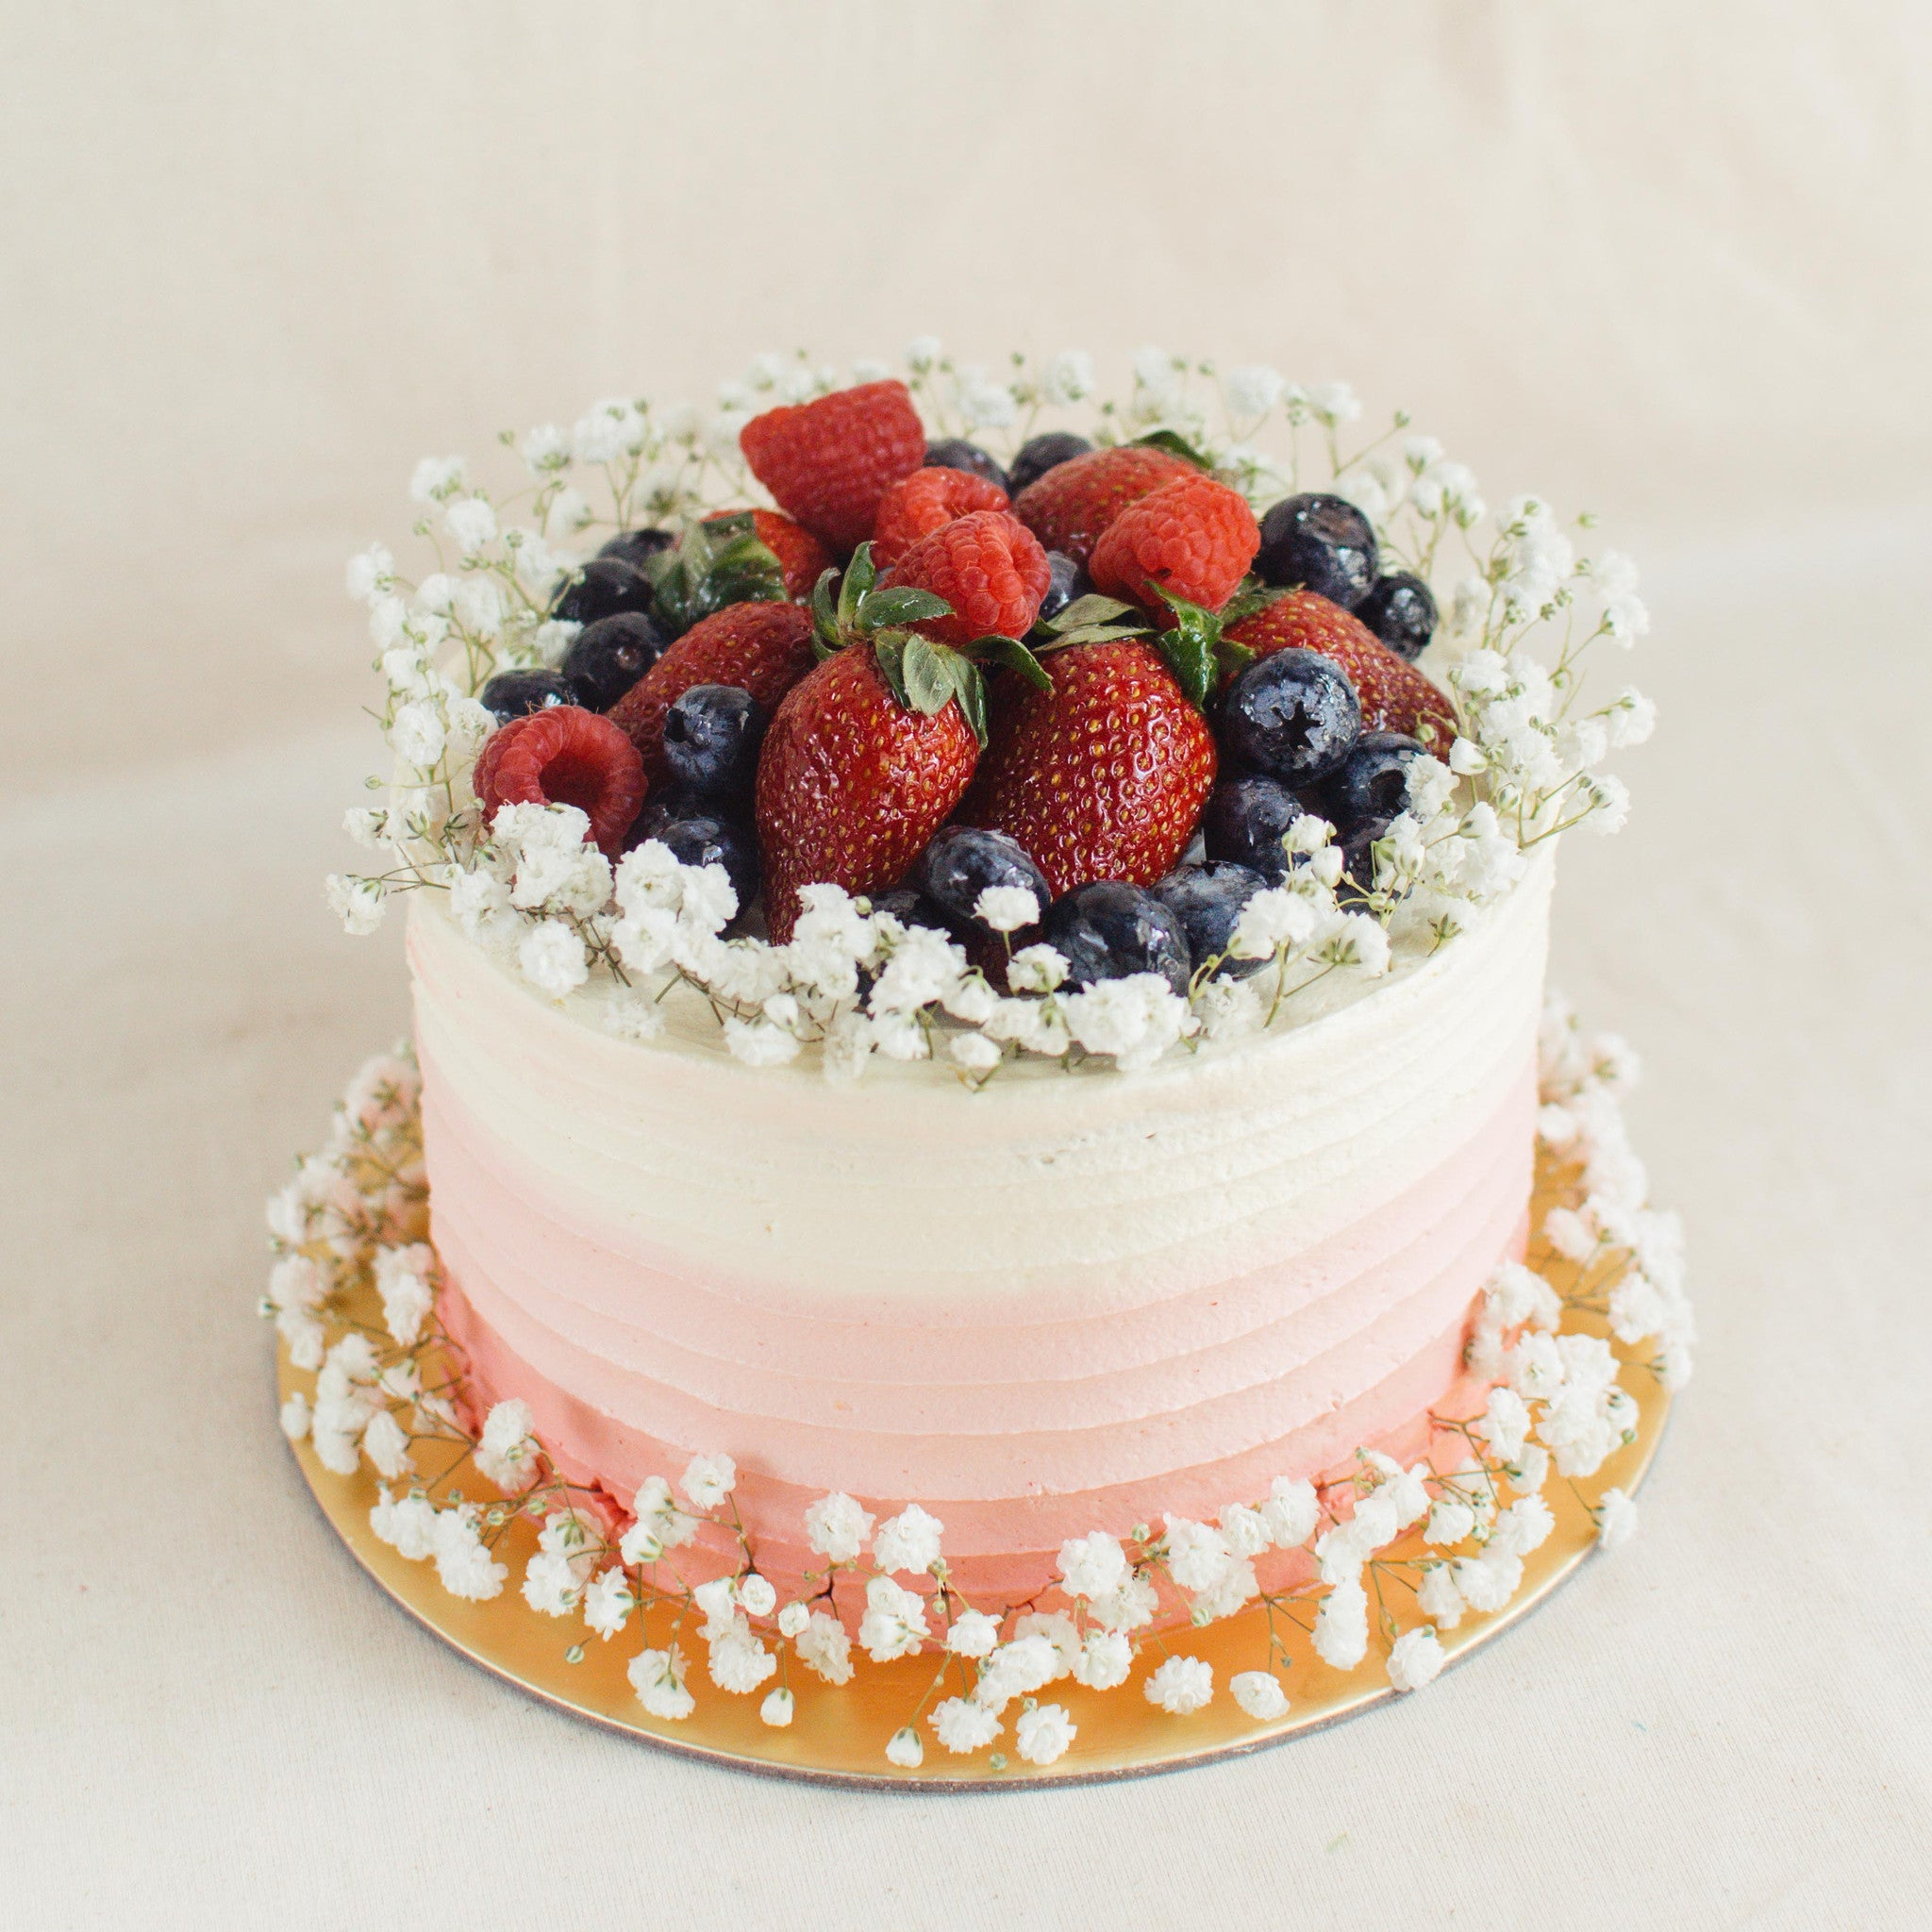 Ombre with Baby's Breath and Mixed Berries - Custom Bakes by Edith Patisserie